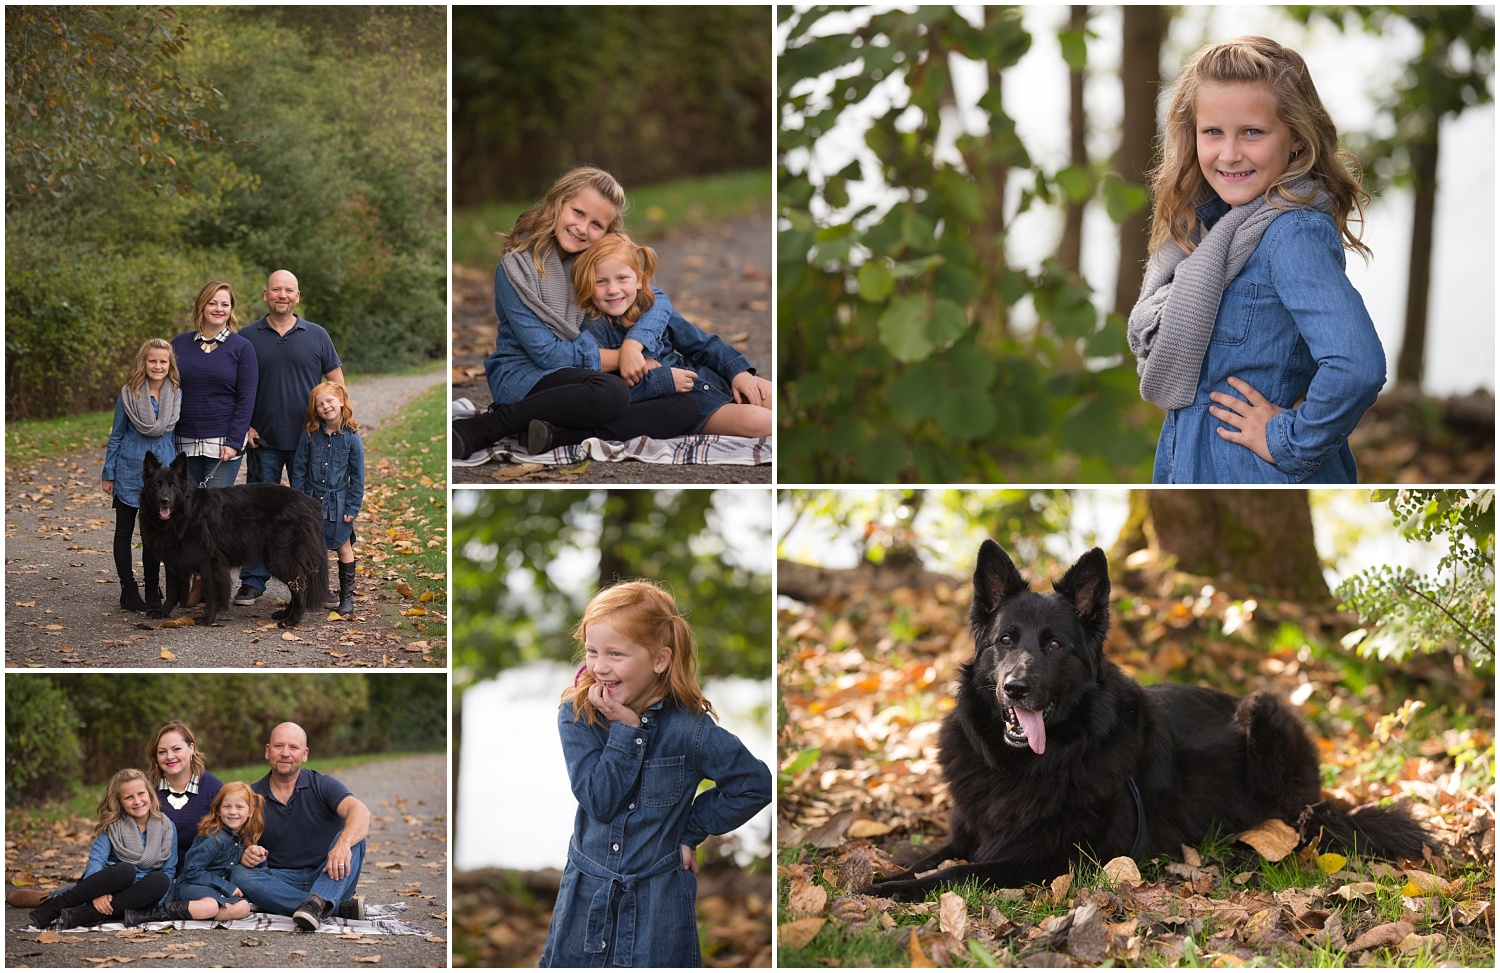 Amazing Day Photography - Fall Mini Sessions - Fall Family Photos - Langley Family Photographer (3).jpg